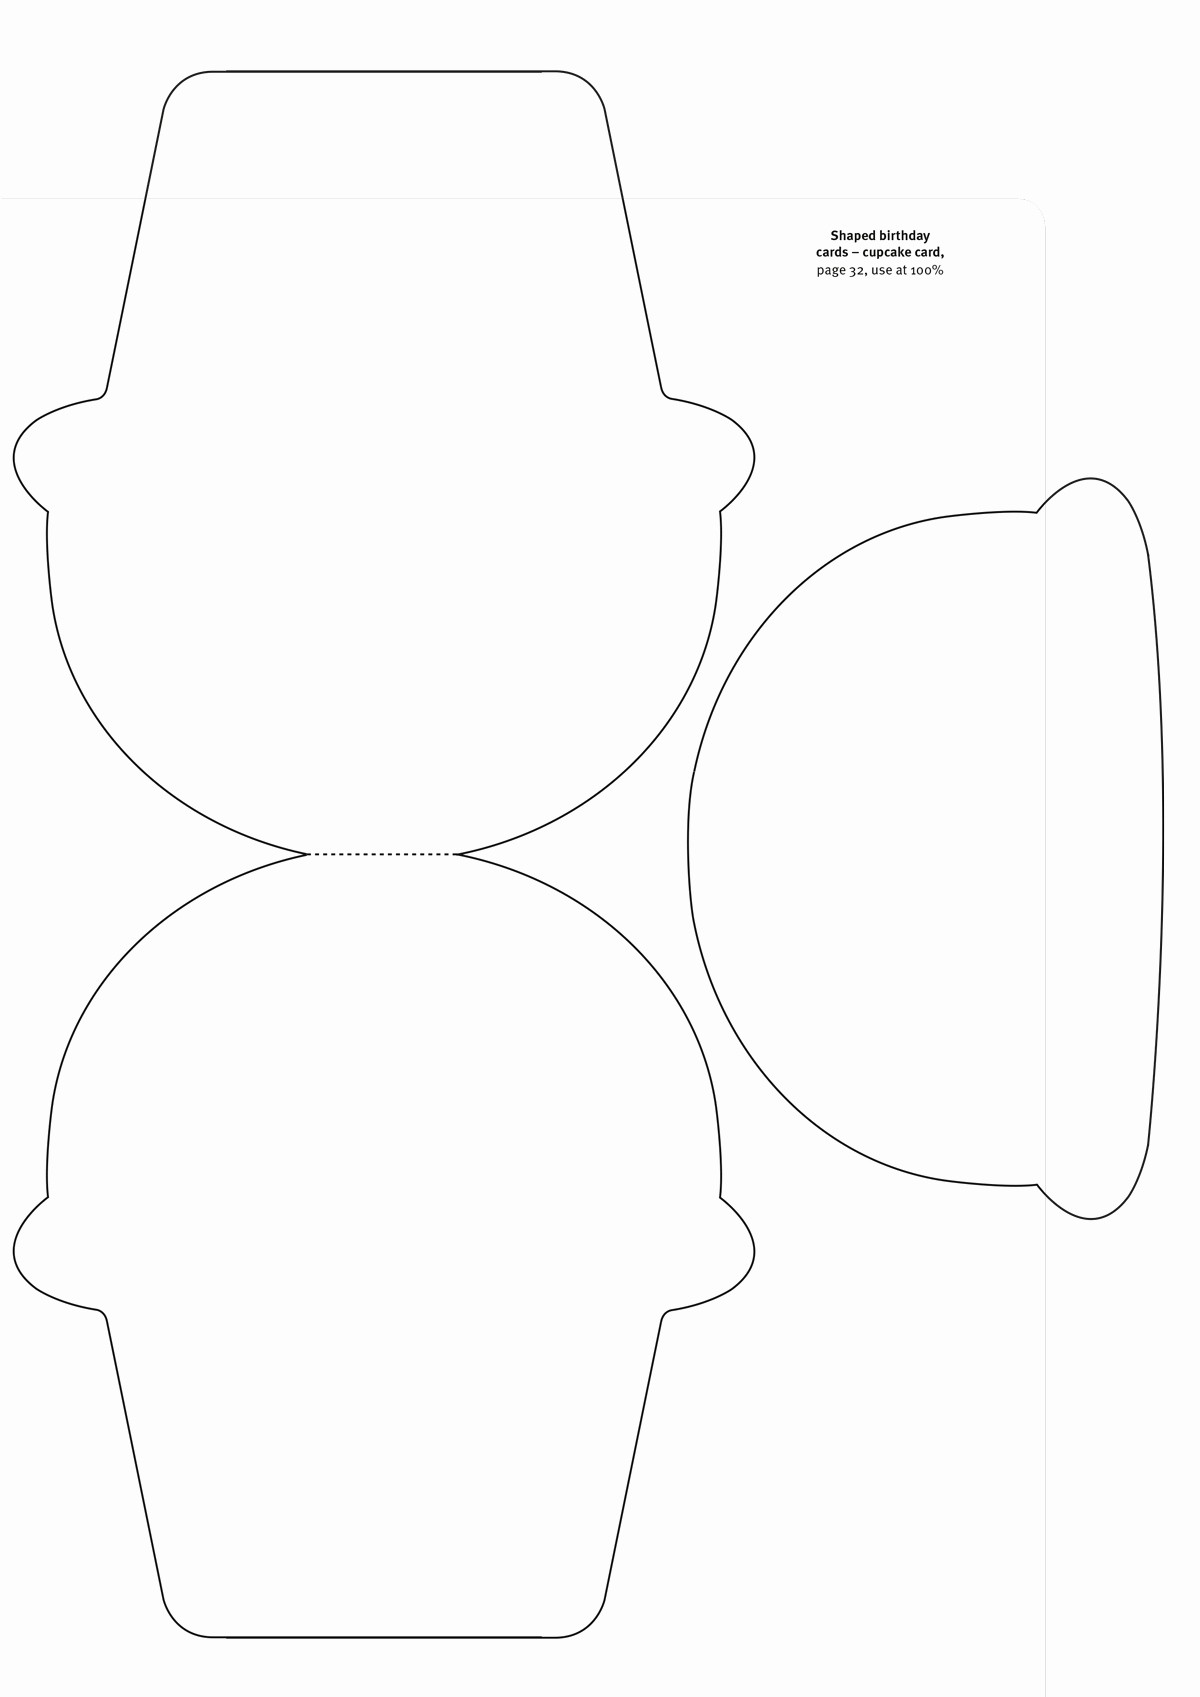 Templates for Cards Free Downloads Fresh Free Card Making Templates From Papercraft Inspirations